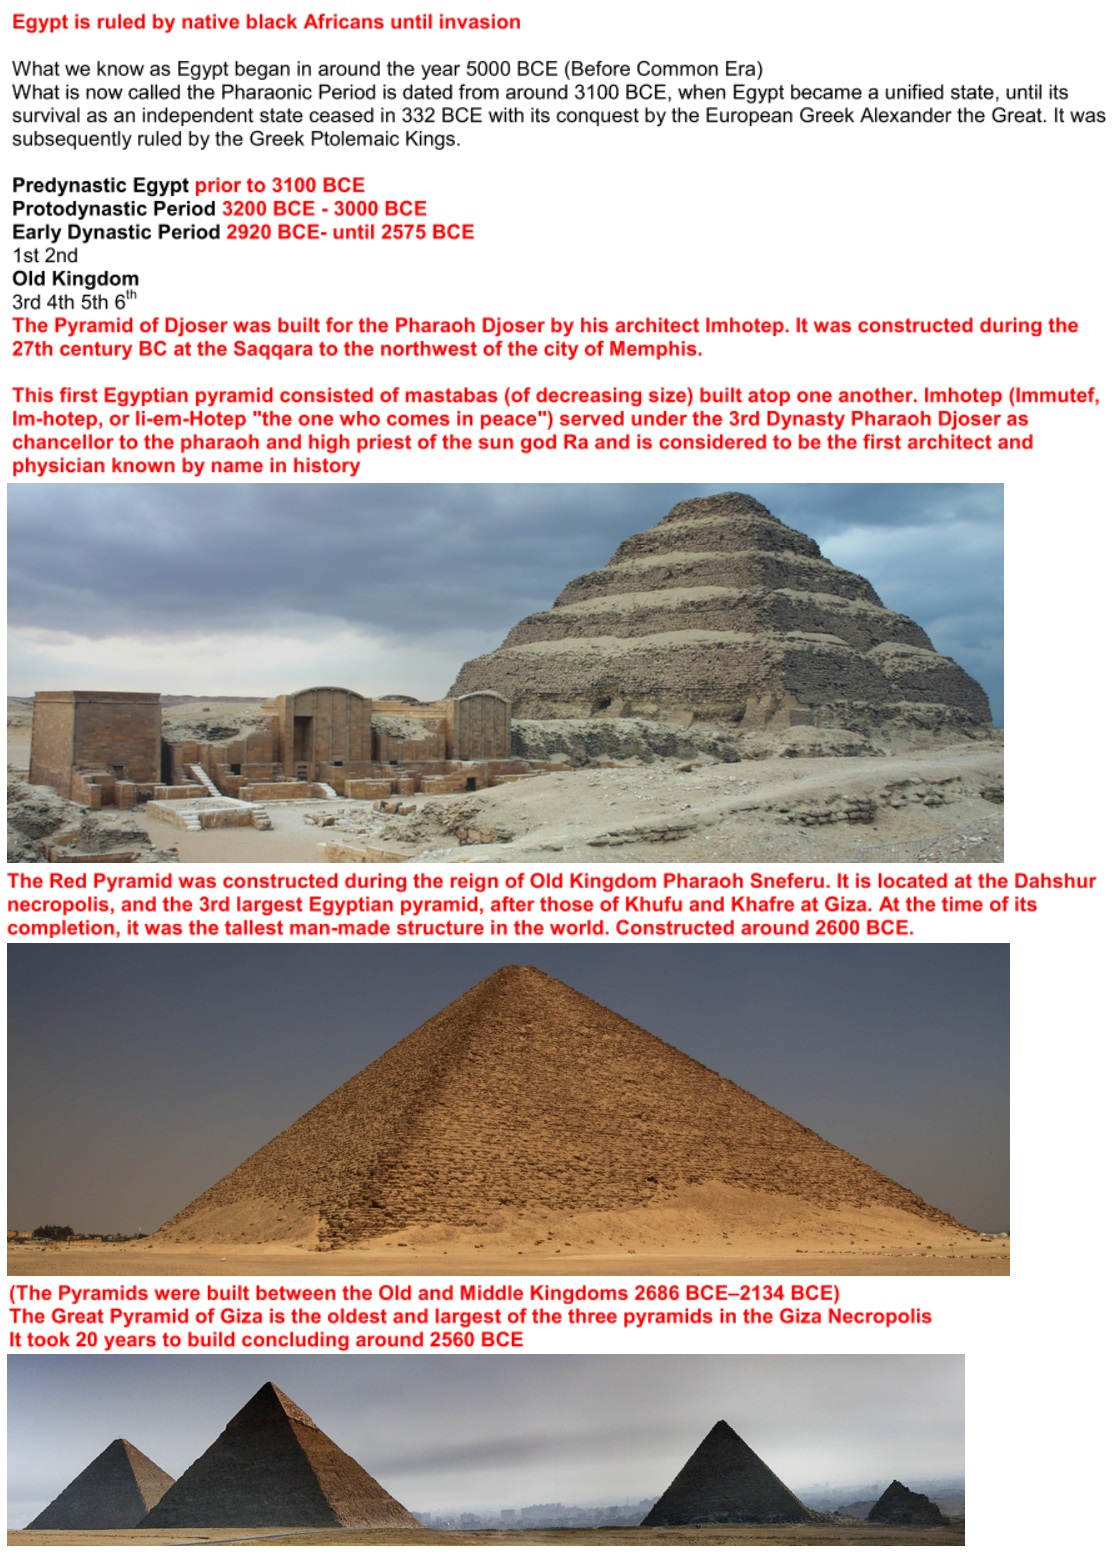 University Of Cambridge S Fitzwilliam Museum States That Ancient Egypt Was In Fact The Land Of